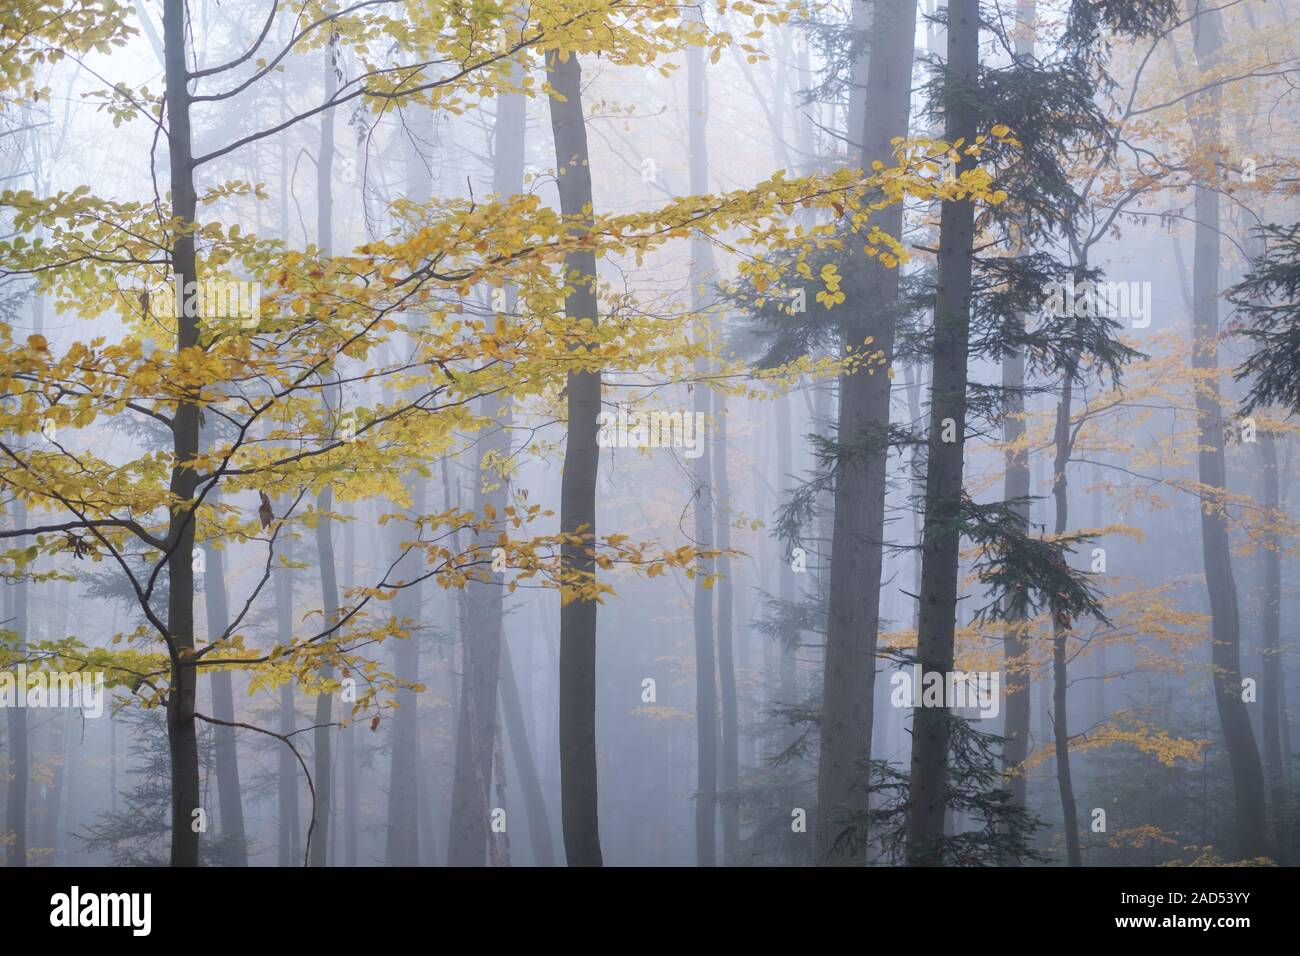 Here are woodland photos from my photography blog. Mysterious Dark Beech Forest In Fog Autumn Morning In The Misty Woods Magical Foggy Atmosphere Landscape Photography Stock Photo Alamy